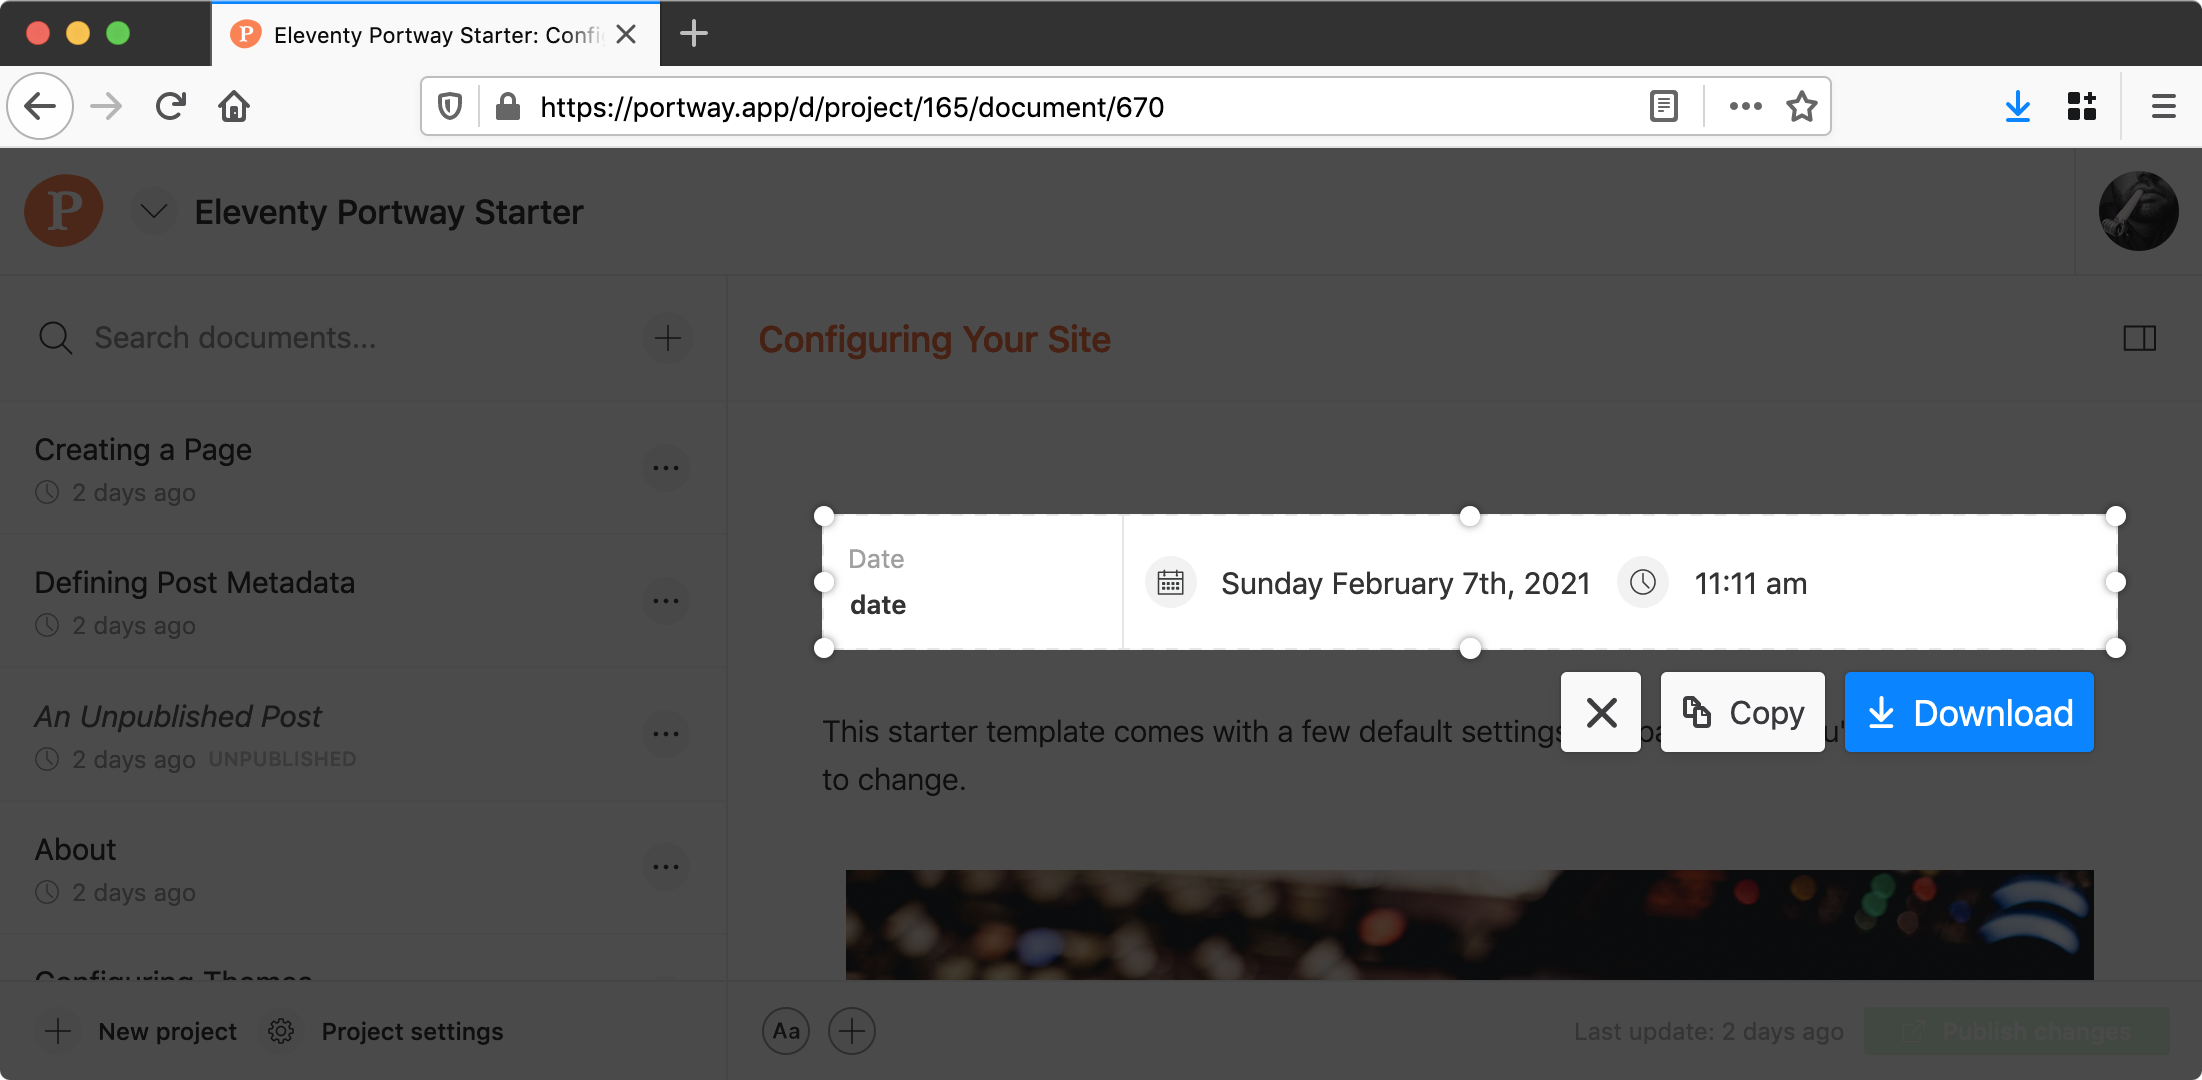 Browser tools highlight a single element for capture